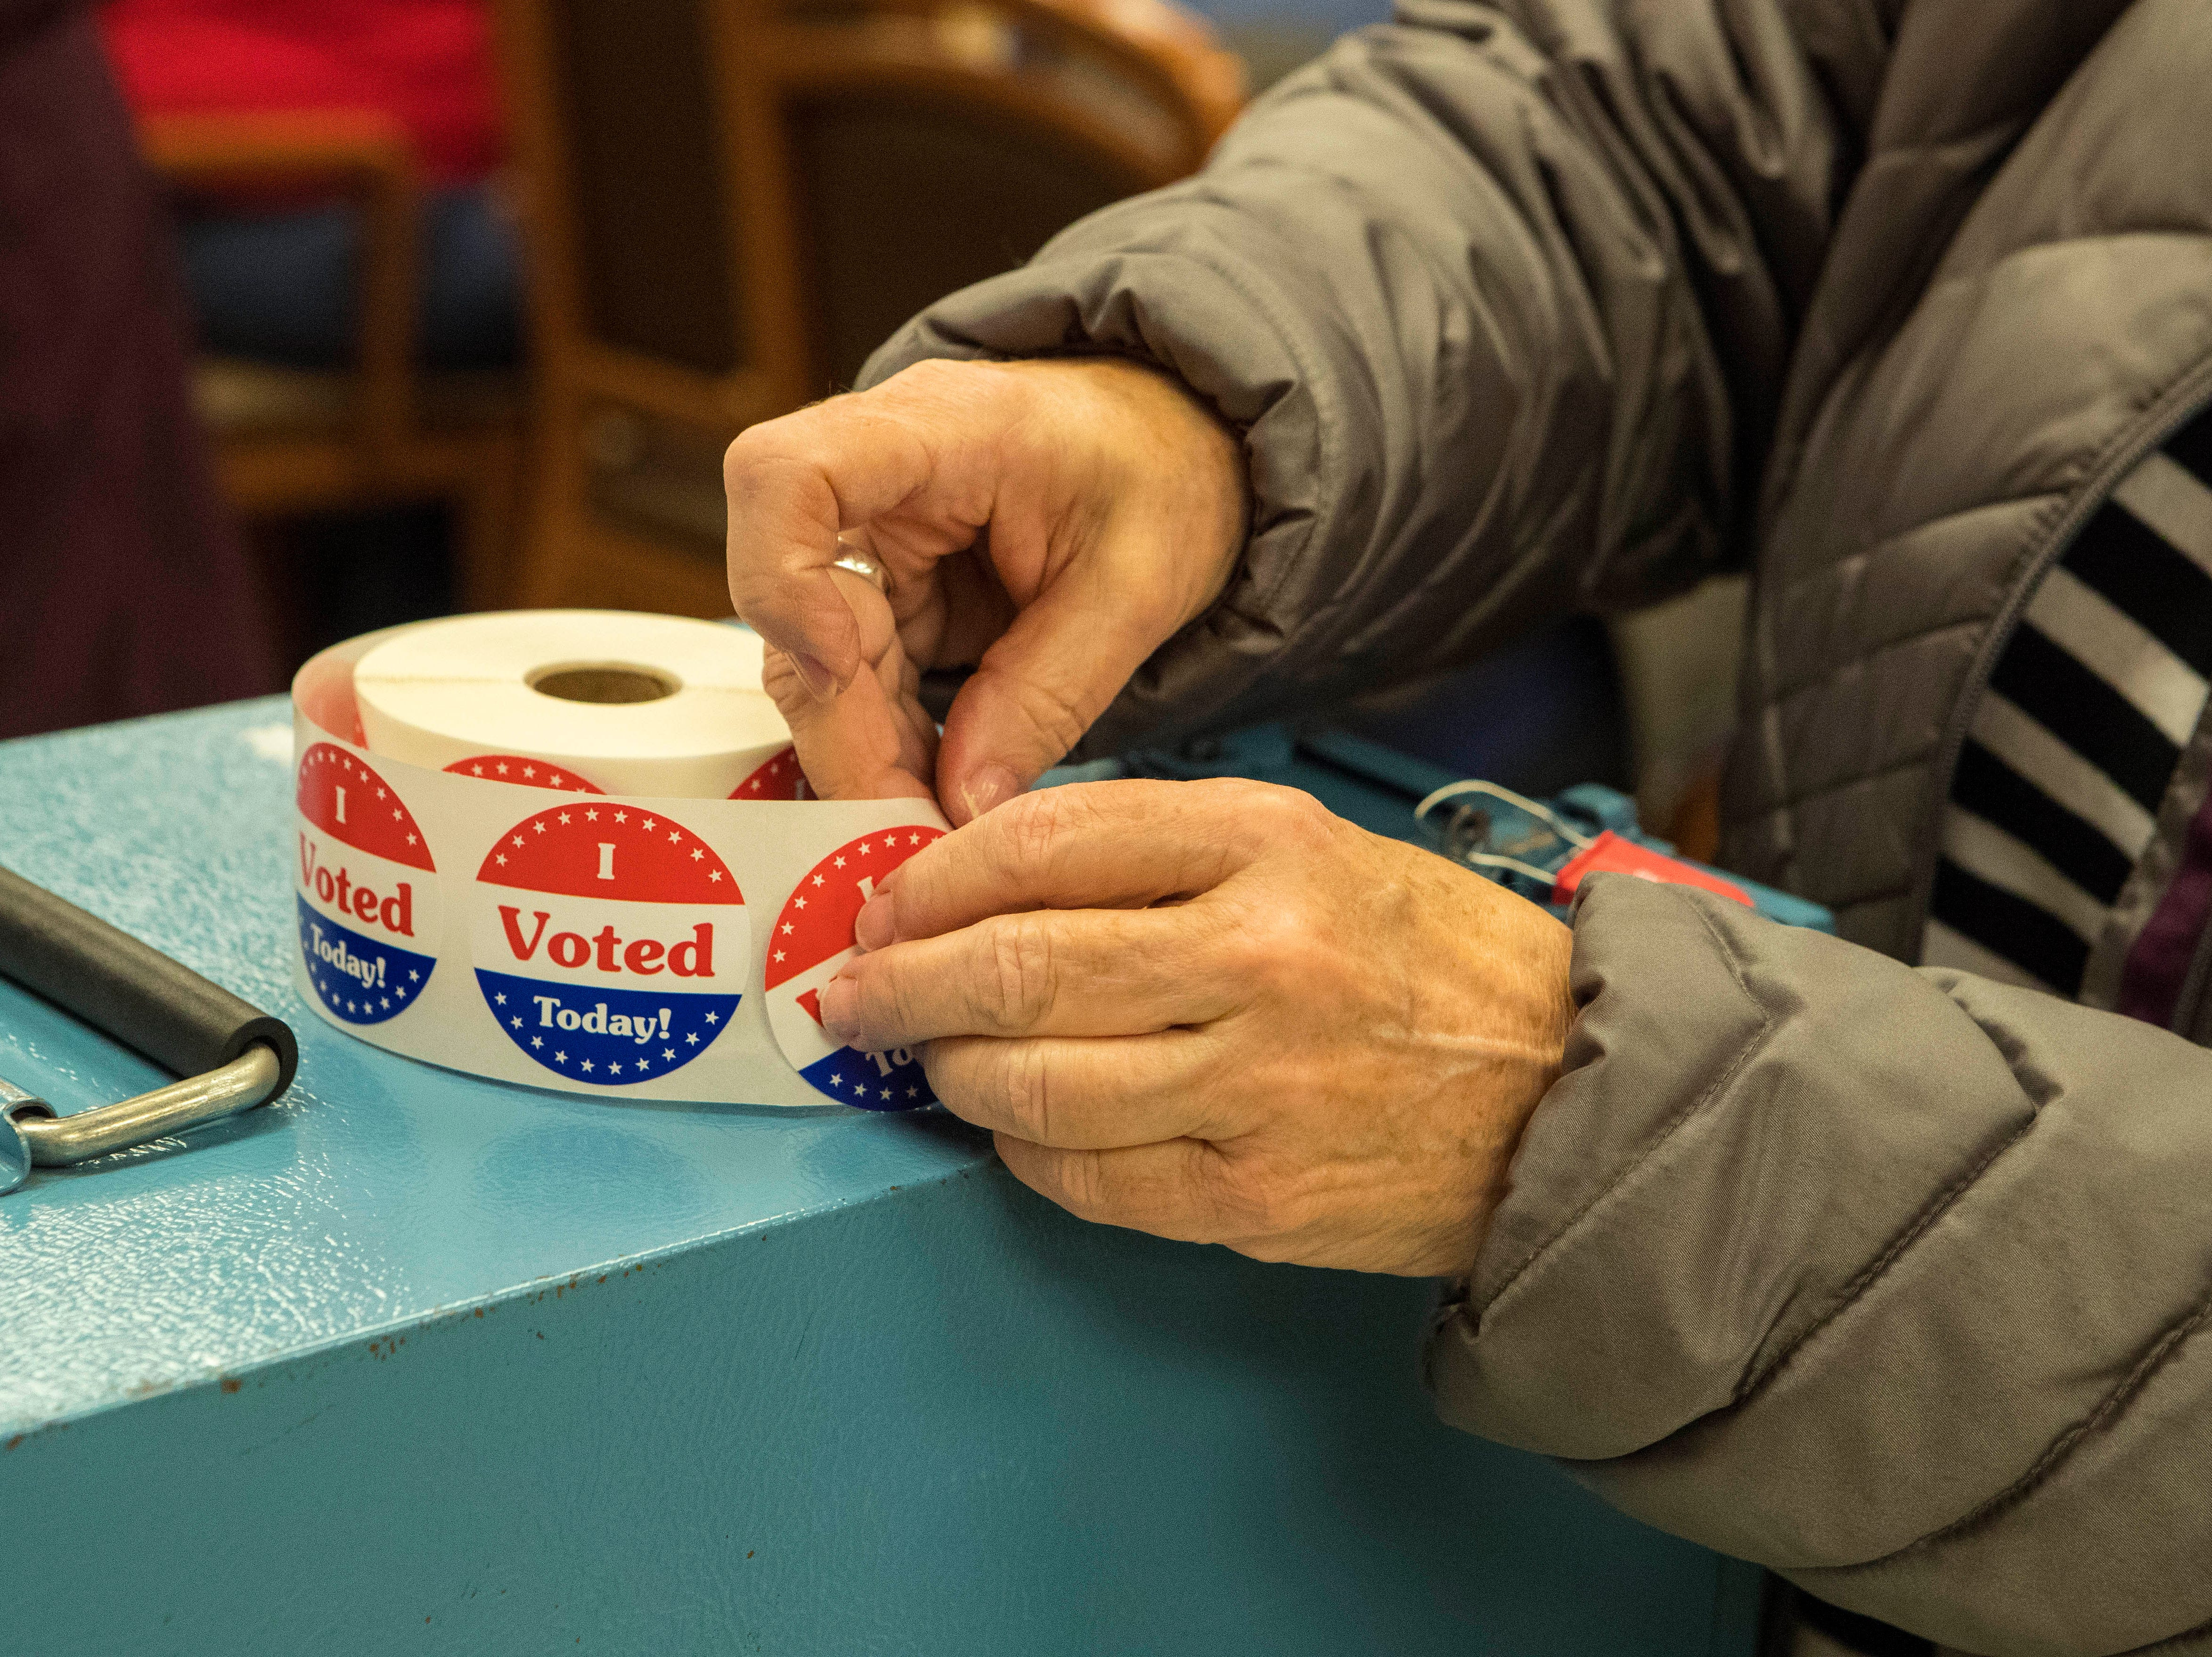 Sioux Falls resident grabs a voting sticker at Avera Prince of Peace Retirement Community in Sioux Falls, S.D., Tuesday, Nov. 6, 2018.